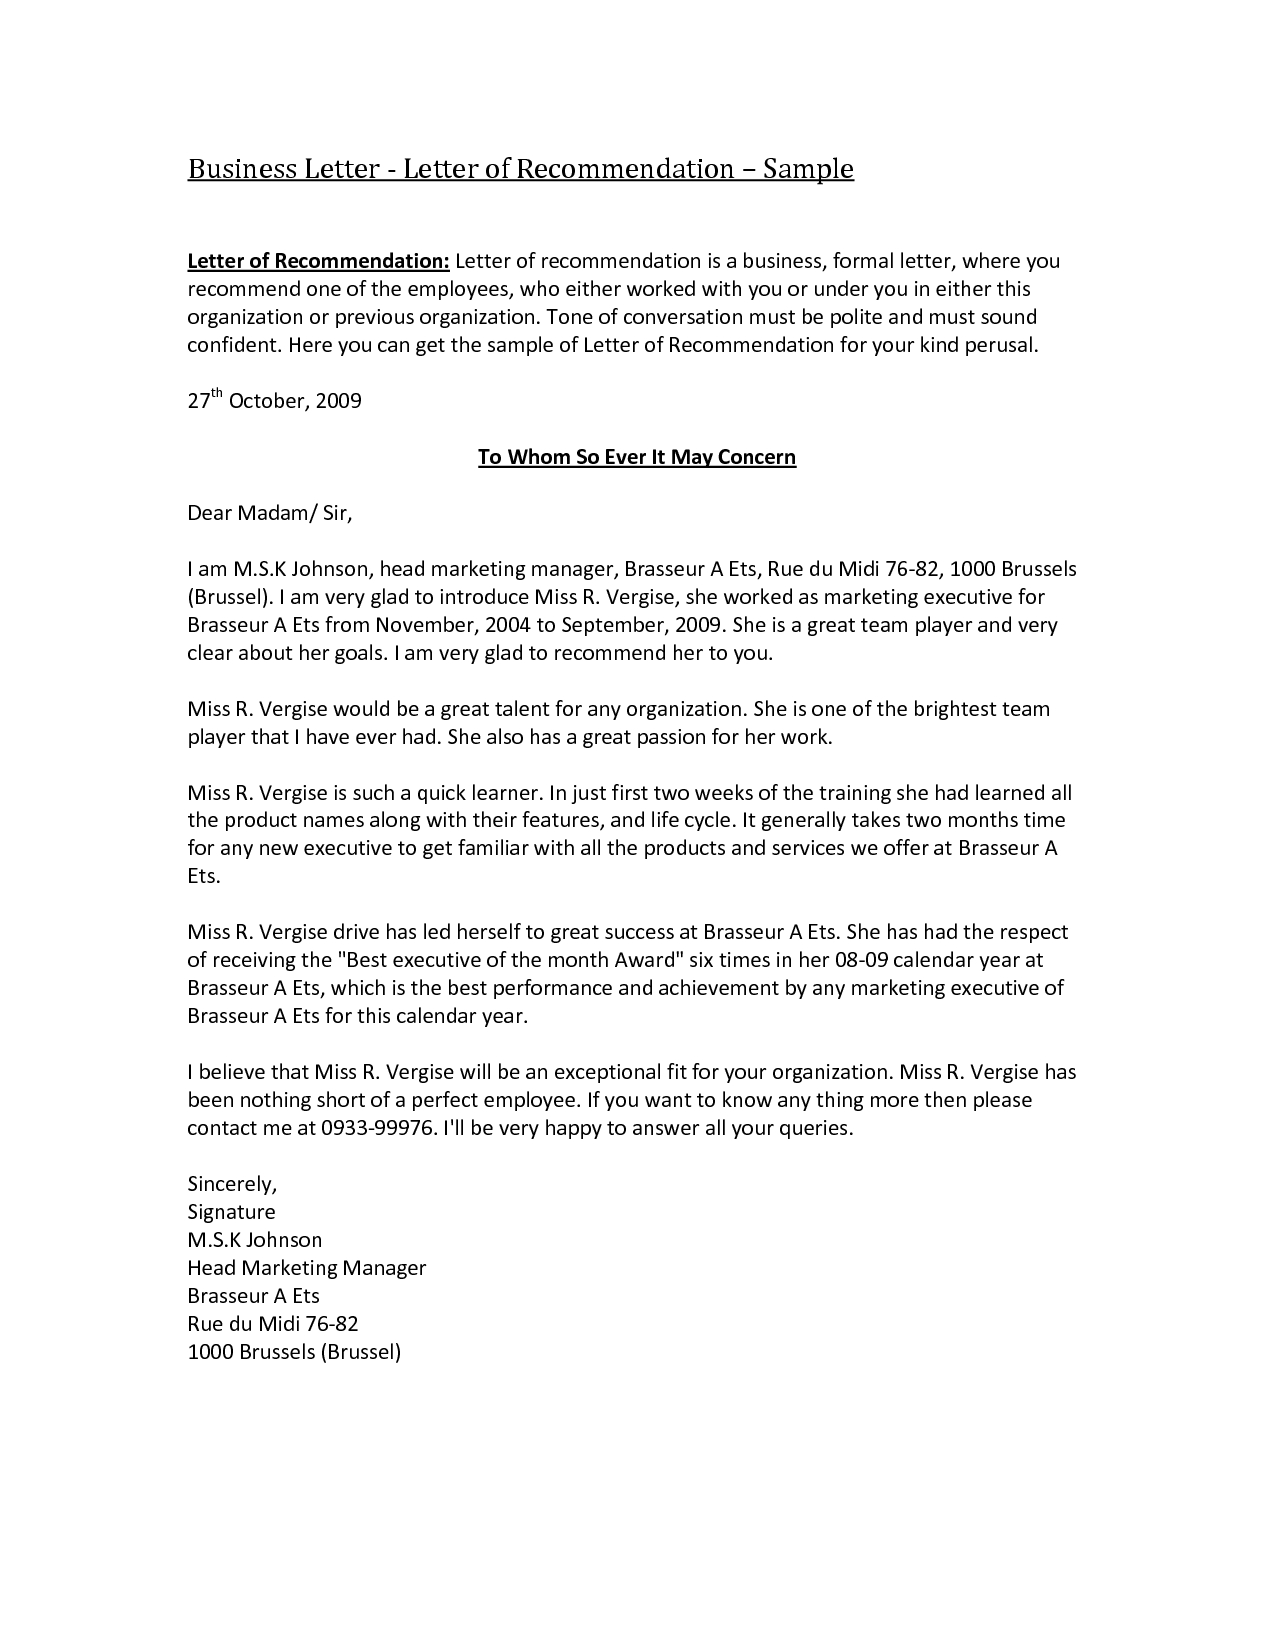 letter about school life and settlement letter template car 19588 | business re mendation letter template acurnamedia of business reference letter template